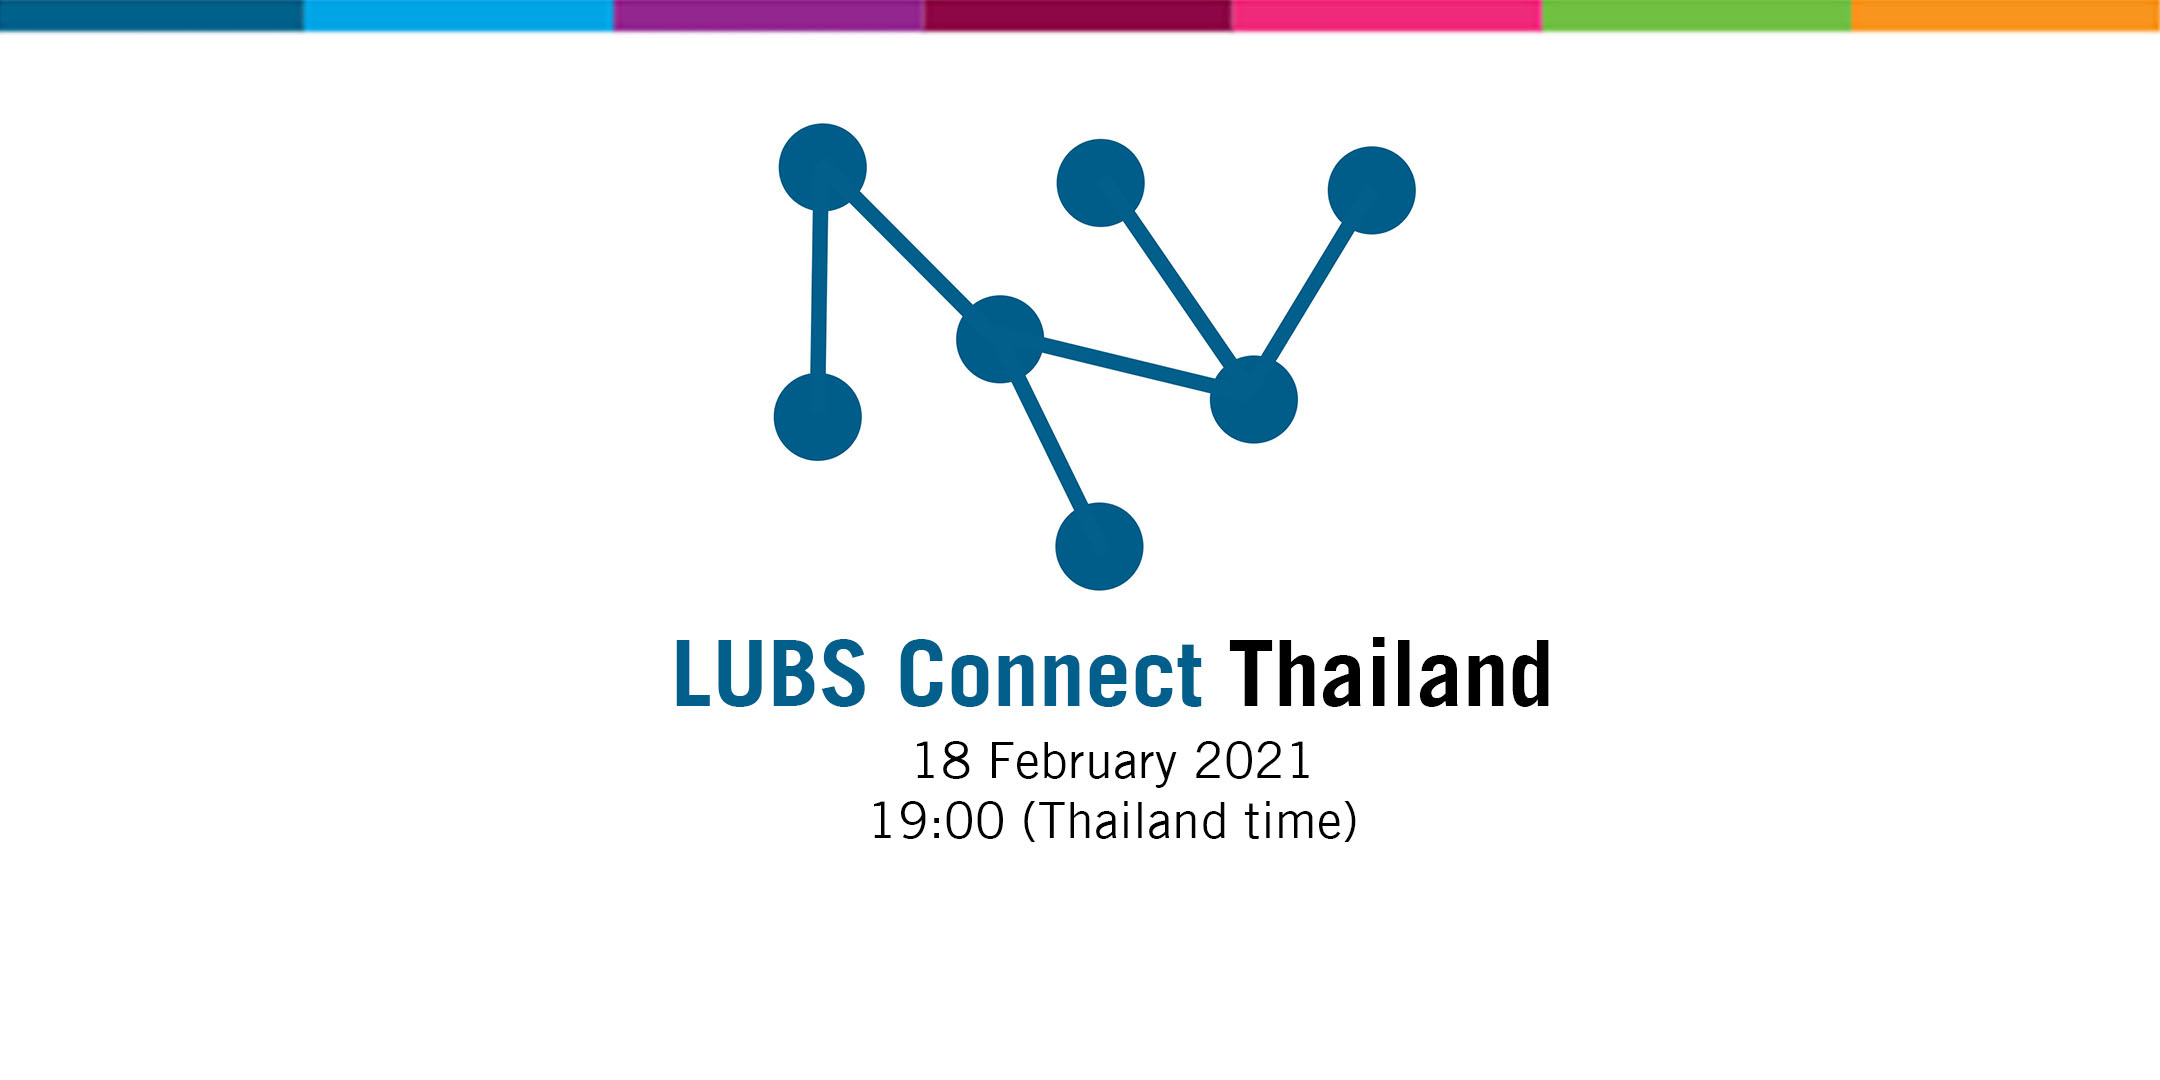 LUBS Connect Thailand